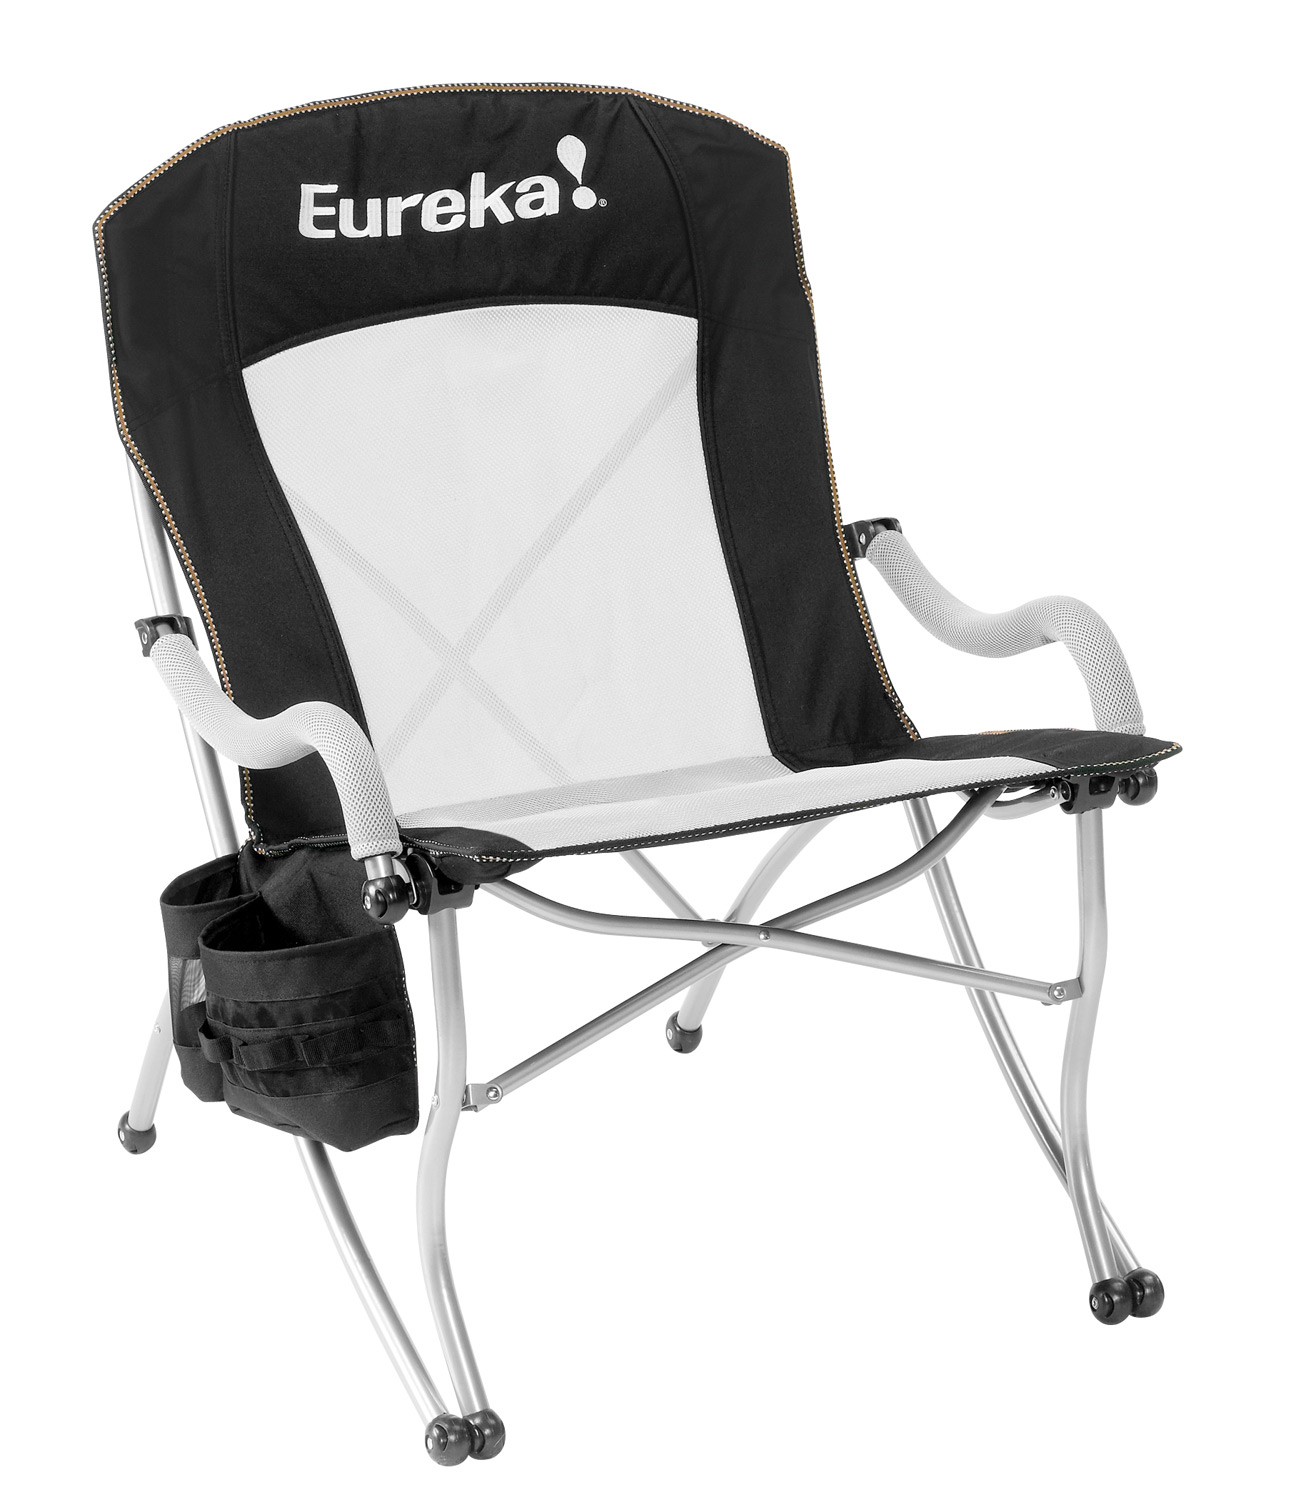 "Camp and Hike Key Features of the Eureka Curvy Camp Chair: The frame is constructed of powder coated steel for long lasting durability. This sling-style chair offers relaxed, comfortable seating for extended periods. Comfort enhancing features include 3D spacer mesh in the seat and lumbar panel to keep you cool, foam padding in the seat and headrest, and padded armrests. The side pocket includes a beverage holster, a storage bin for a book, MP3, phone, or snack, plus a 6 loop webbing daisy chain for clipping keys. Size34.5"" x 26"" x 37.75"" Weight Capacity225 lbs Carry Weight11 lbs 9 oz - $69.95"